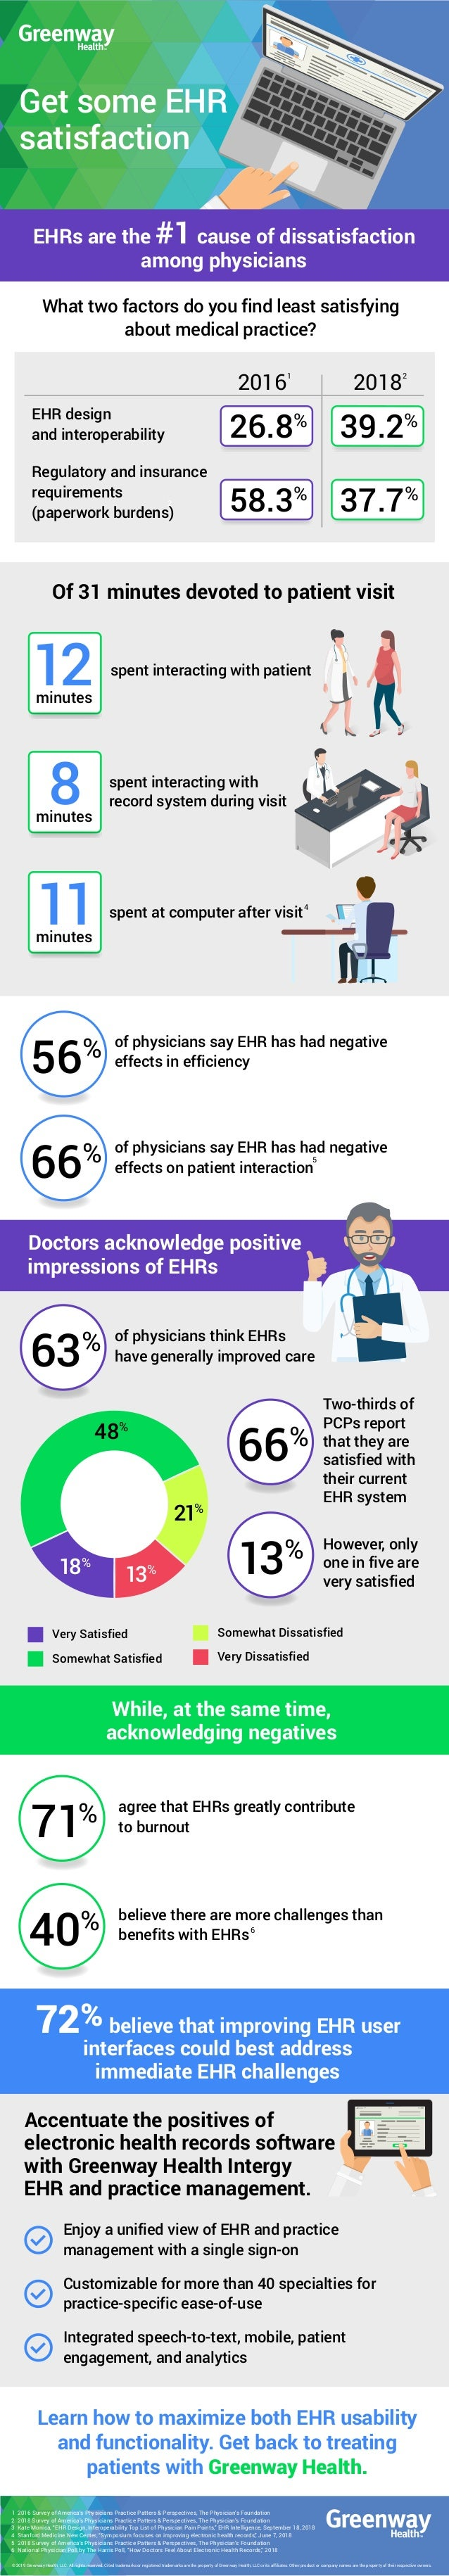 Get some EHR satisfaction EHRs are the #1 cause of dissatisfaction among physicians Doctors acknowledge positive impressio...